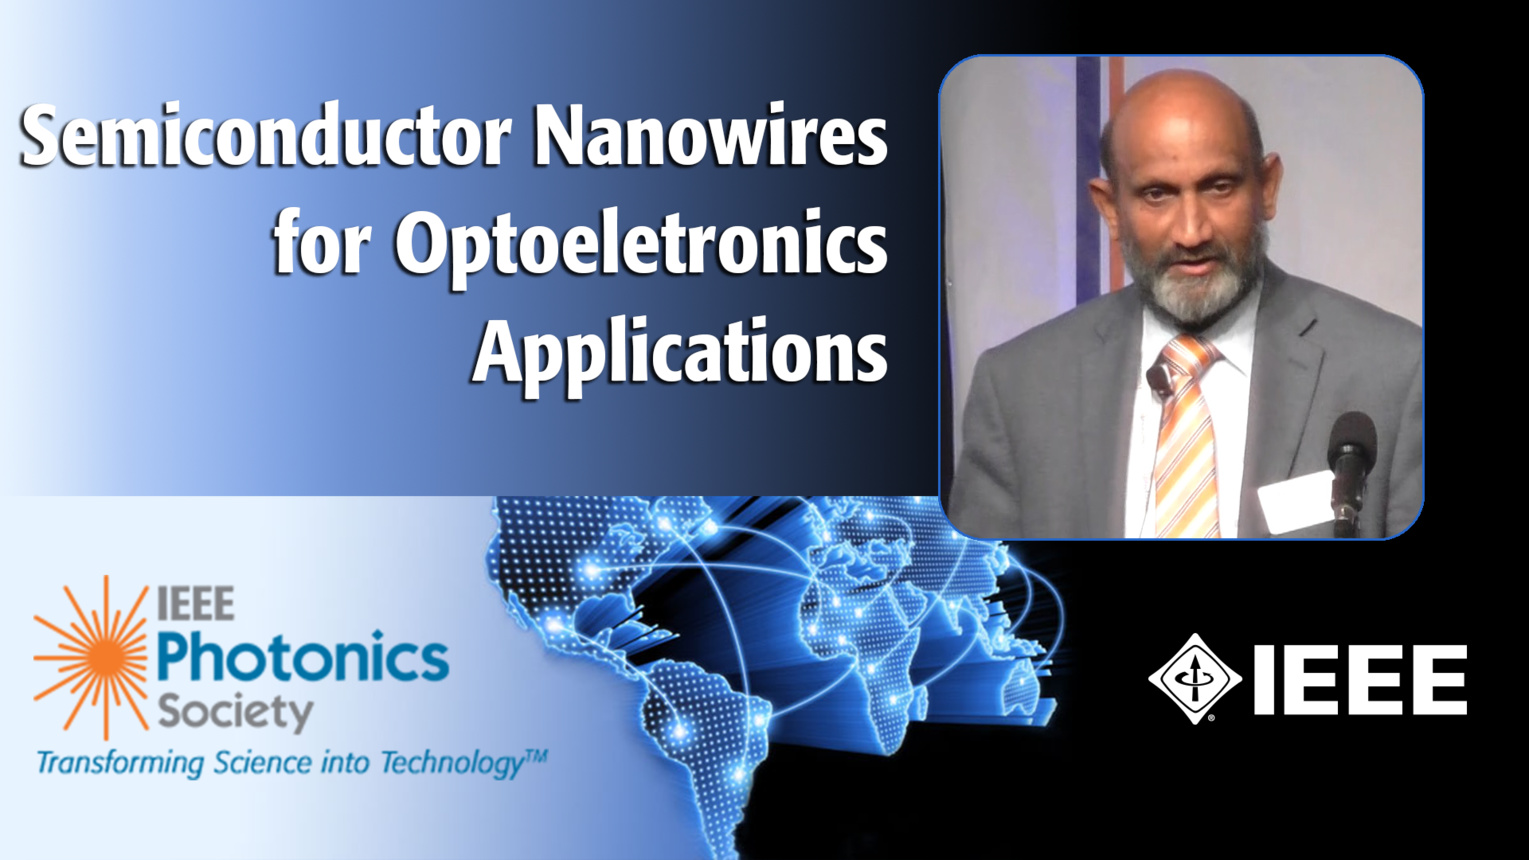 Semiconductor Nanowires for Optoeletronics Applications: An IPC Keynote with Chennupati Jagadish